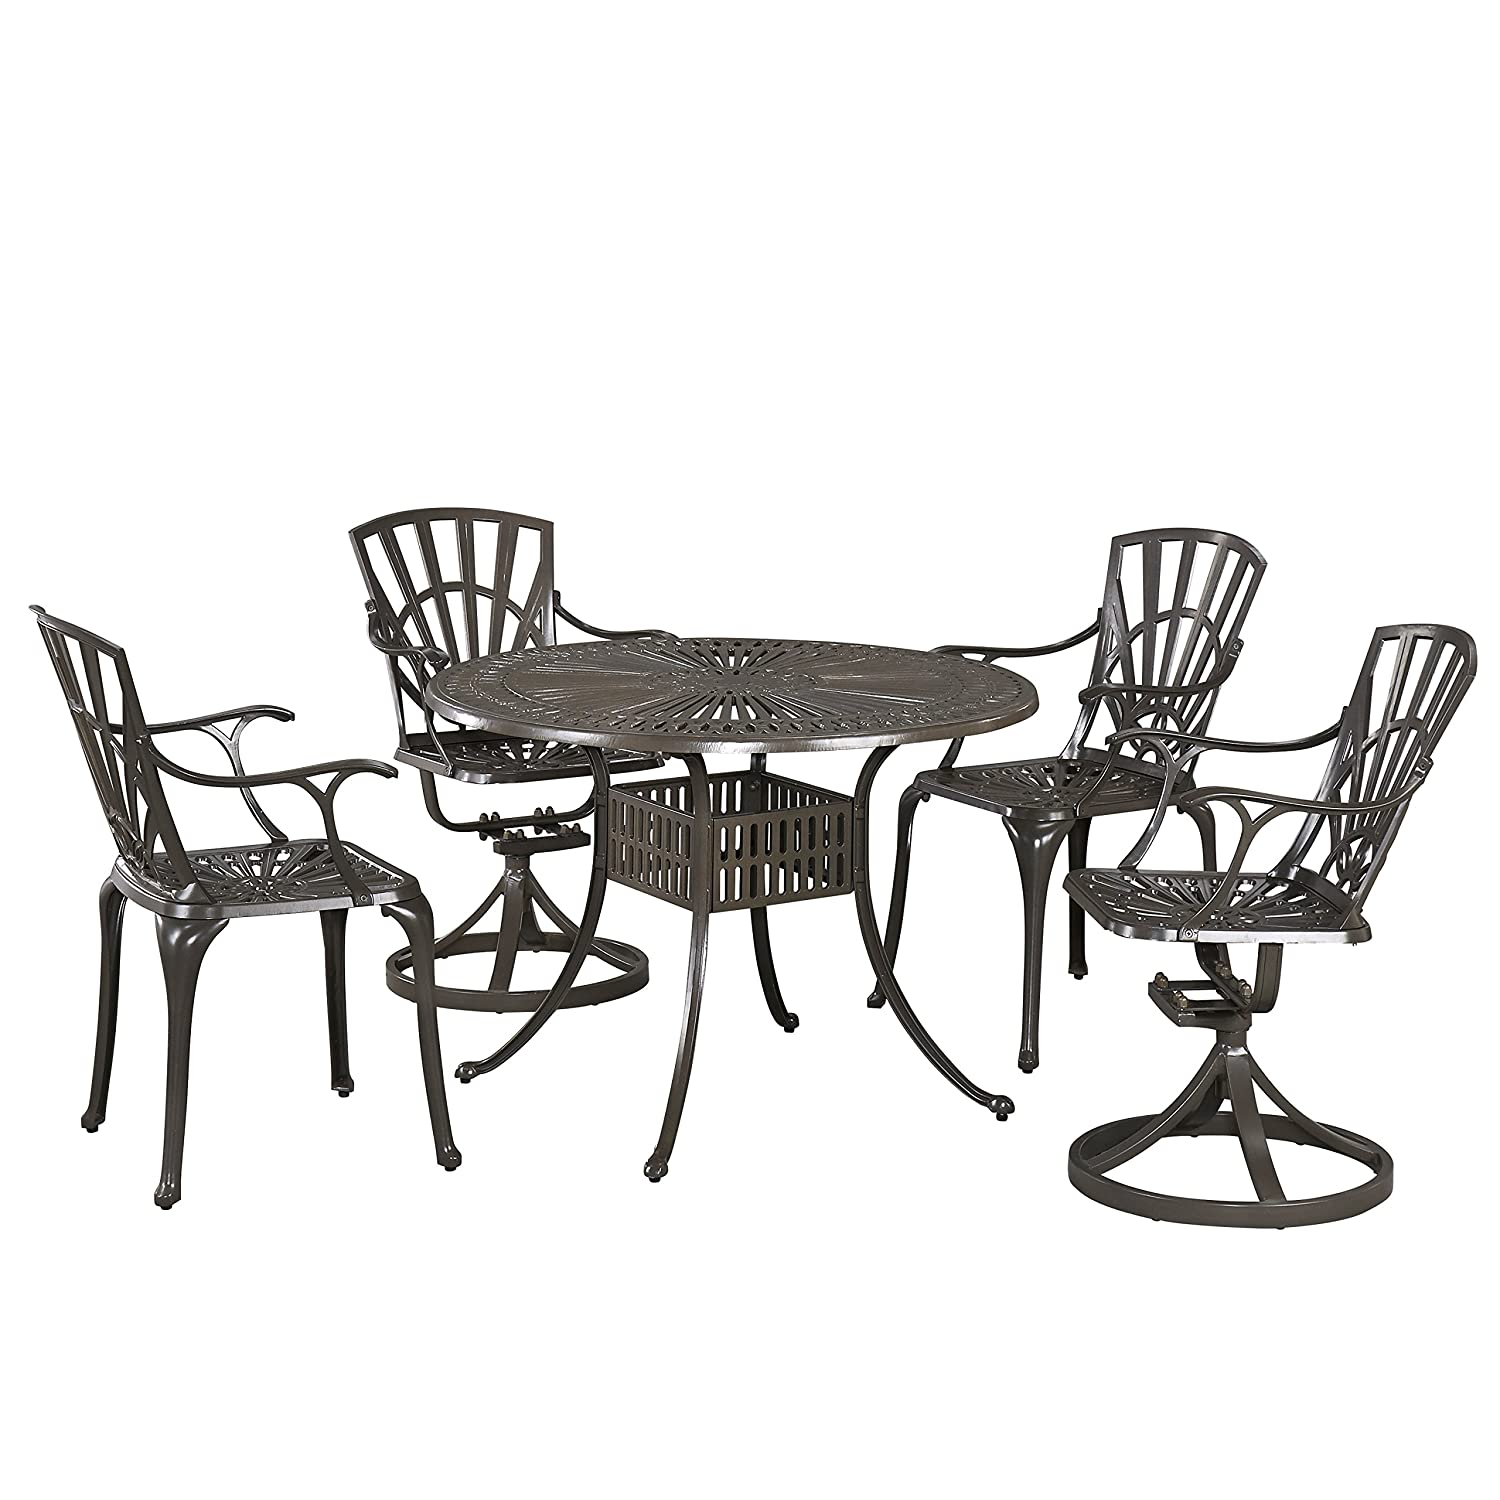 Outstanding Home Styles 5561 3058 Largo 5 Piece Outdoor Dining Set With 42 Table Two Swivel Chairs And Two Arm Chairs Evergreenethics Interior Chair Design Evergreenethicsorg